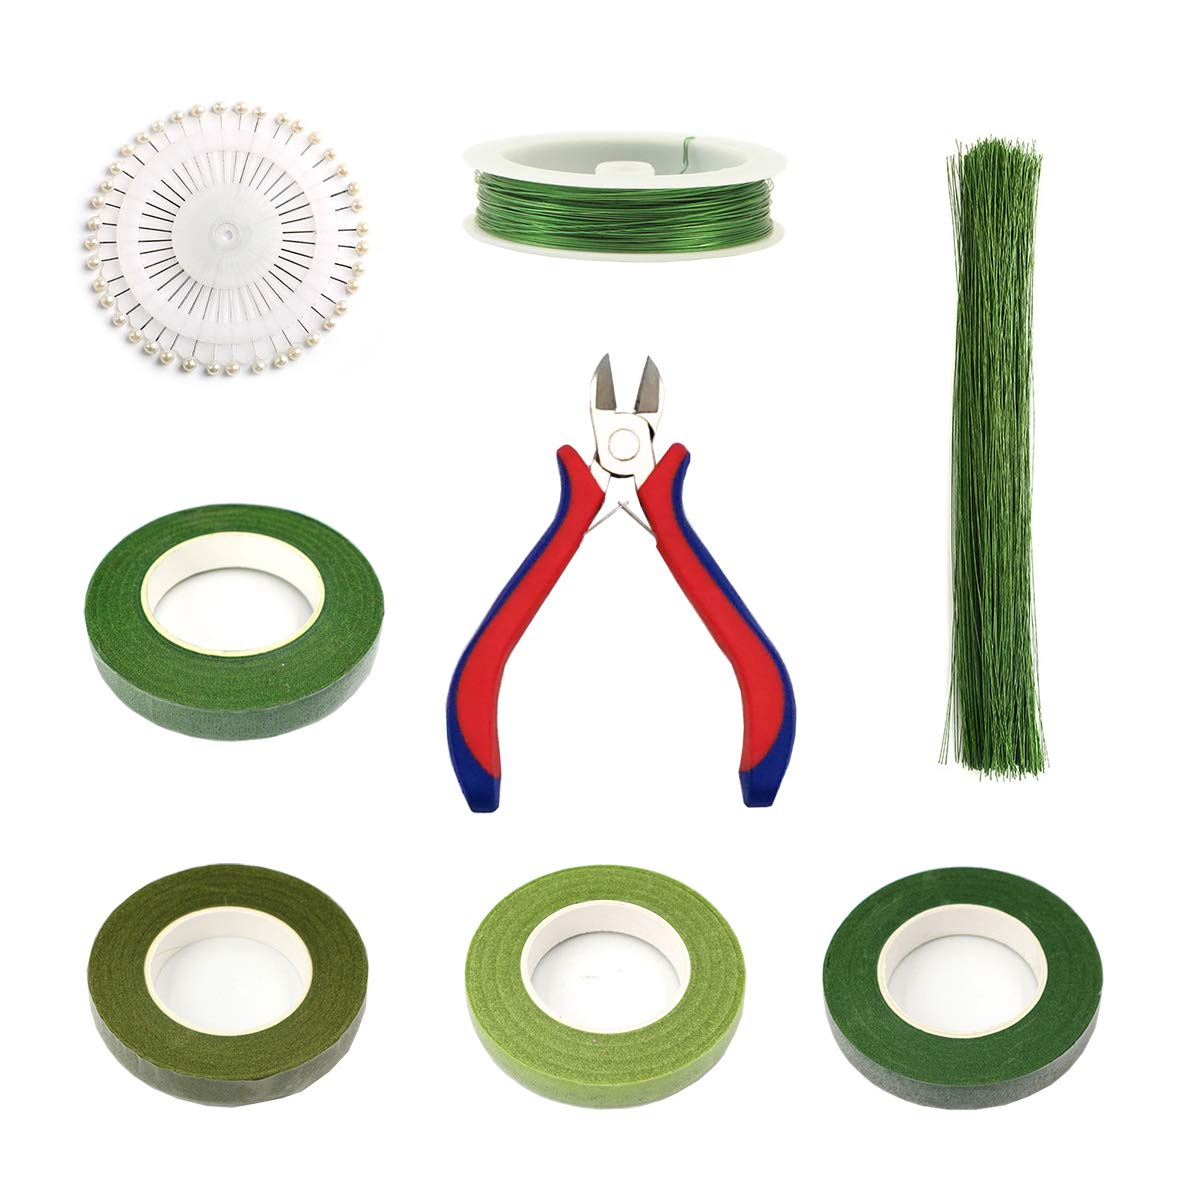 Floral Arrangement Kit Tools - Zivisk 8 Pcs Floral Supplies - Tools Wire Cutter, 4 Rolls Different Green Floral Tape, 100Pcs 22Gauge Floral Stem Wire, 0.4MM Floral Stem Wire, 40 Pcs Ball Head Pins